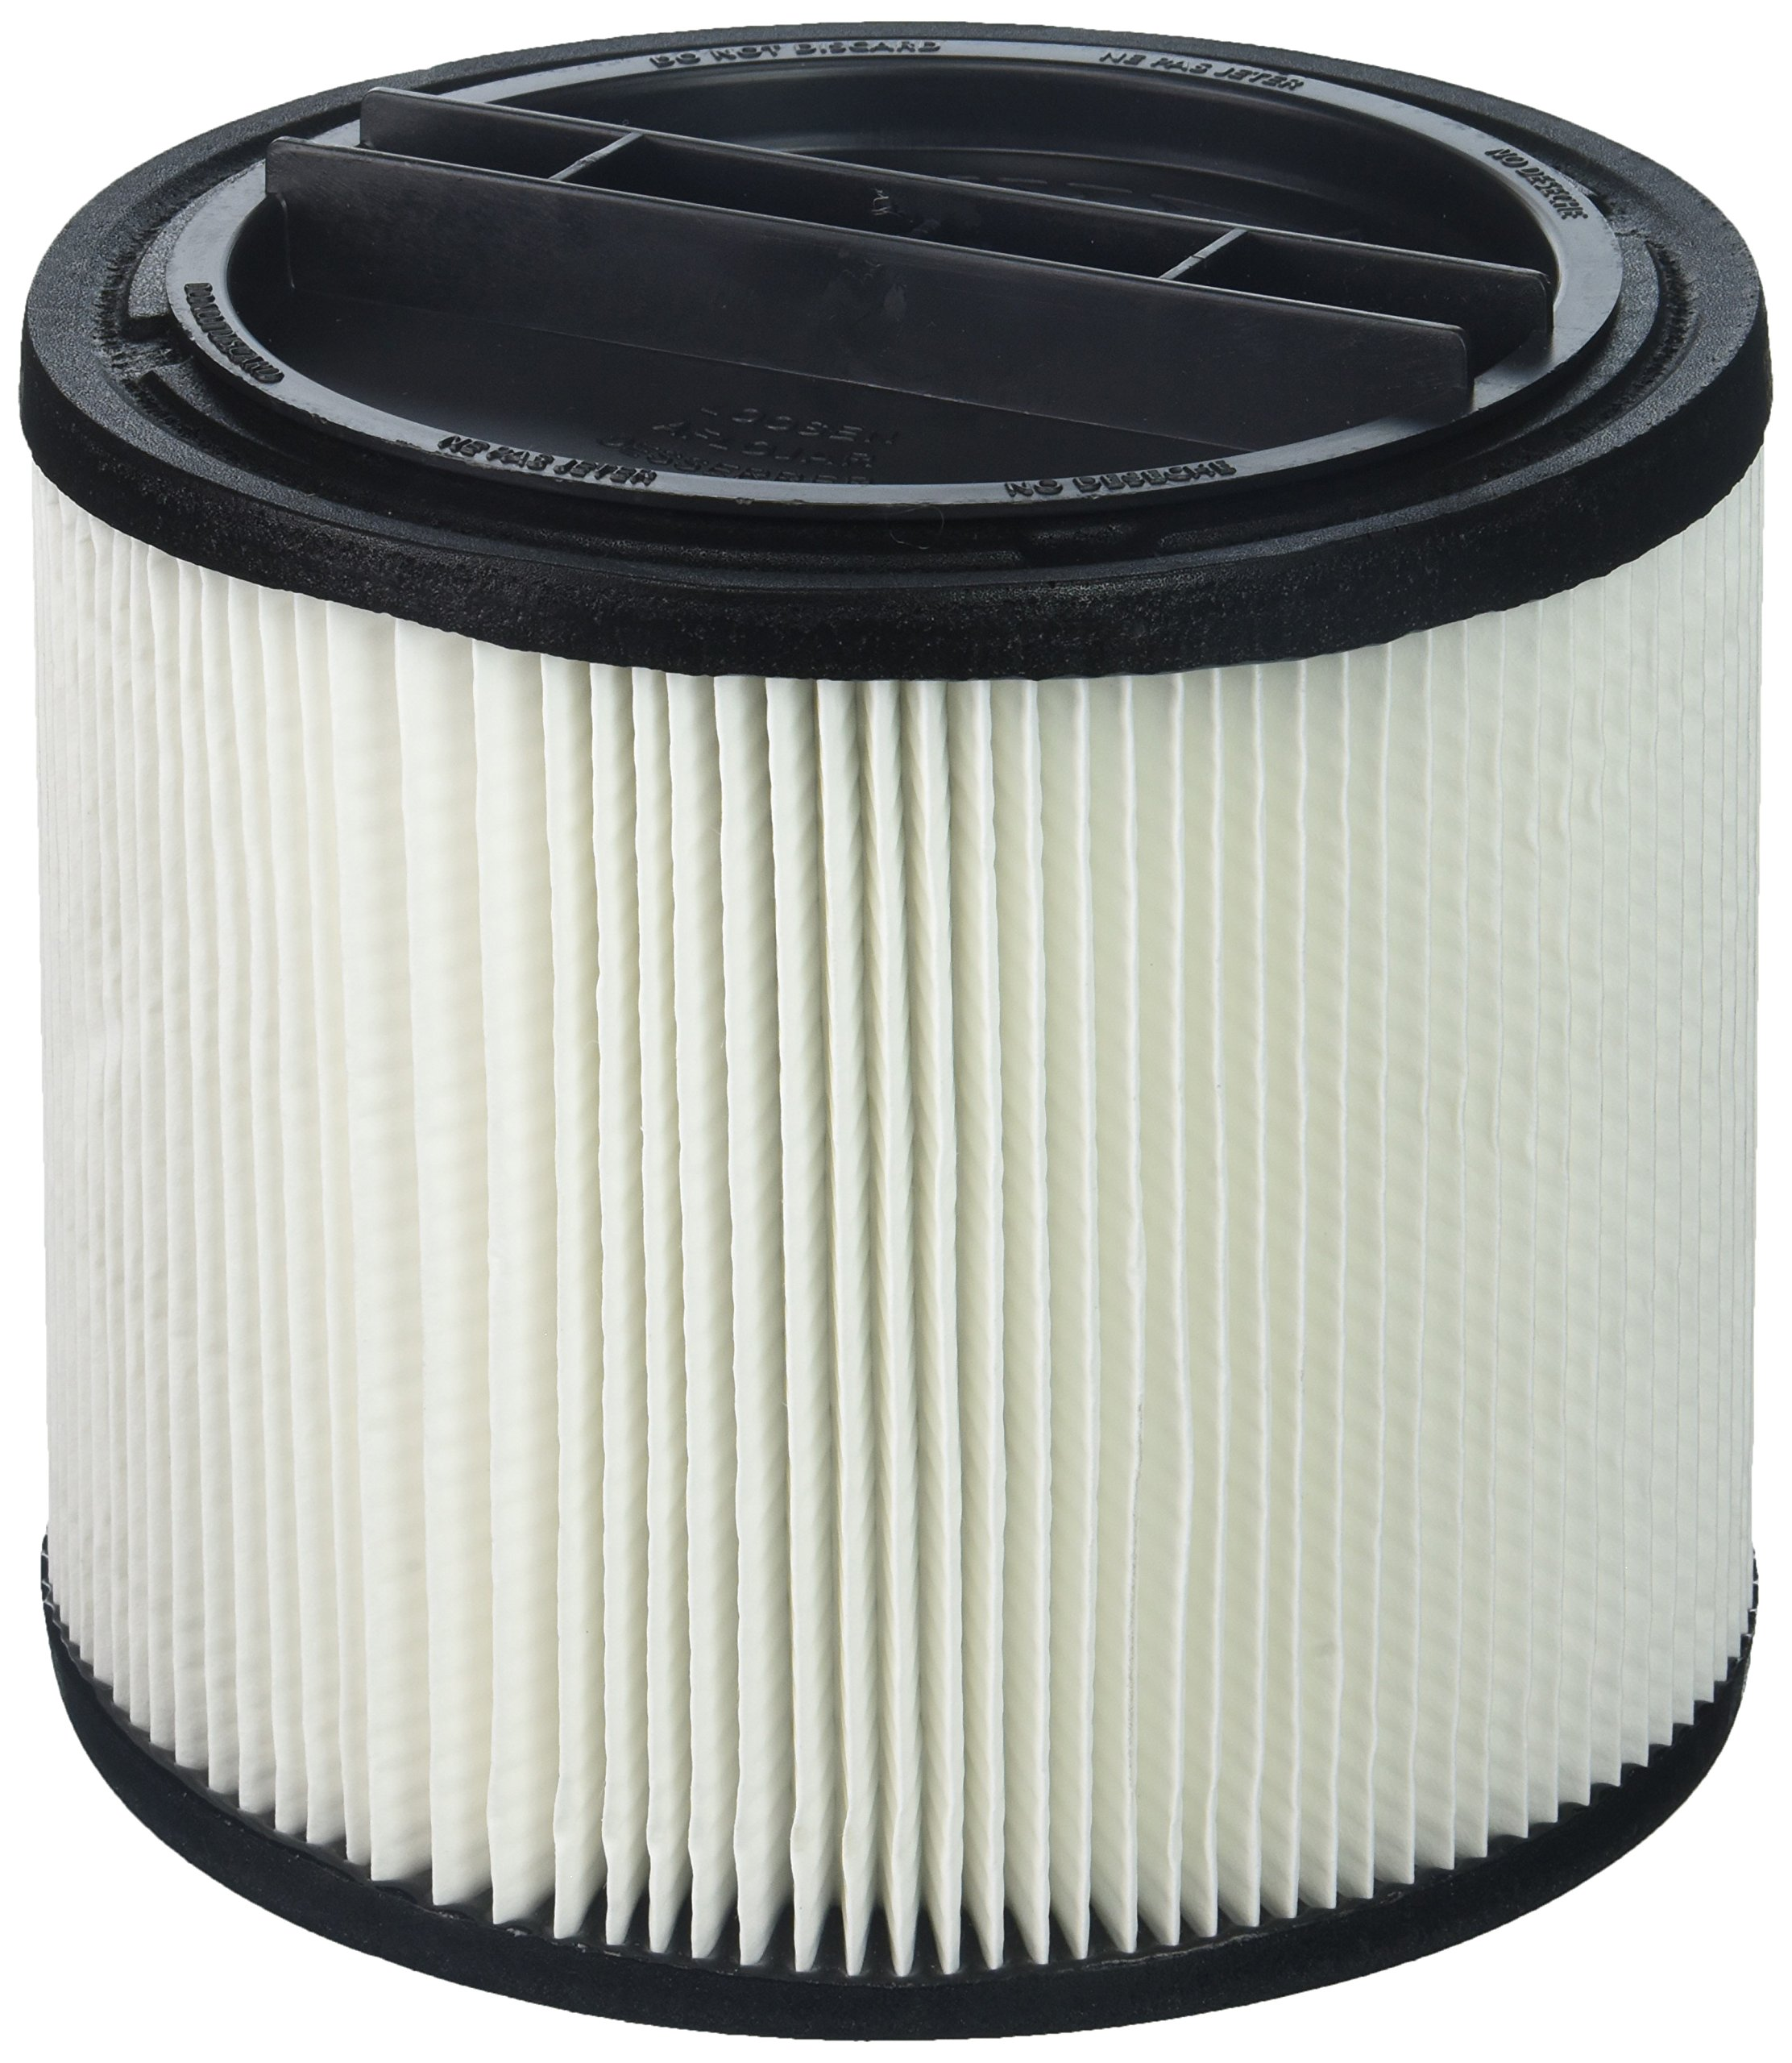 Shop Vac Cartridge Filter 903-04, 2 Pack by Shop-Vac